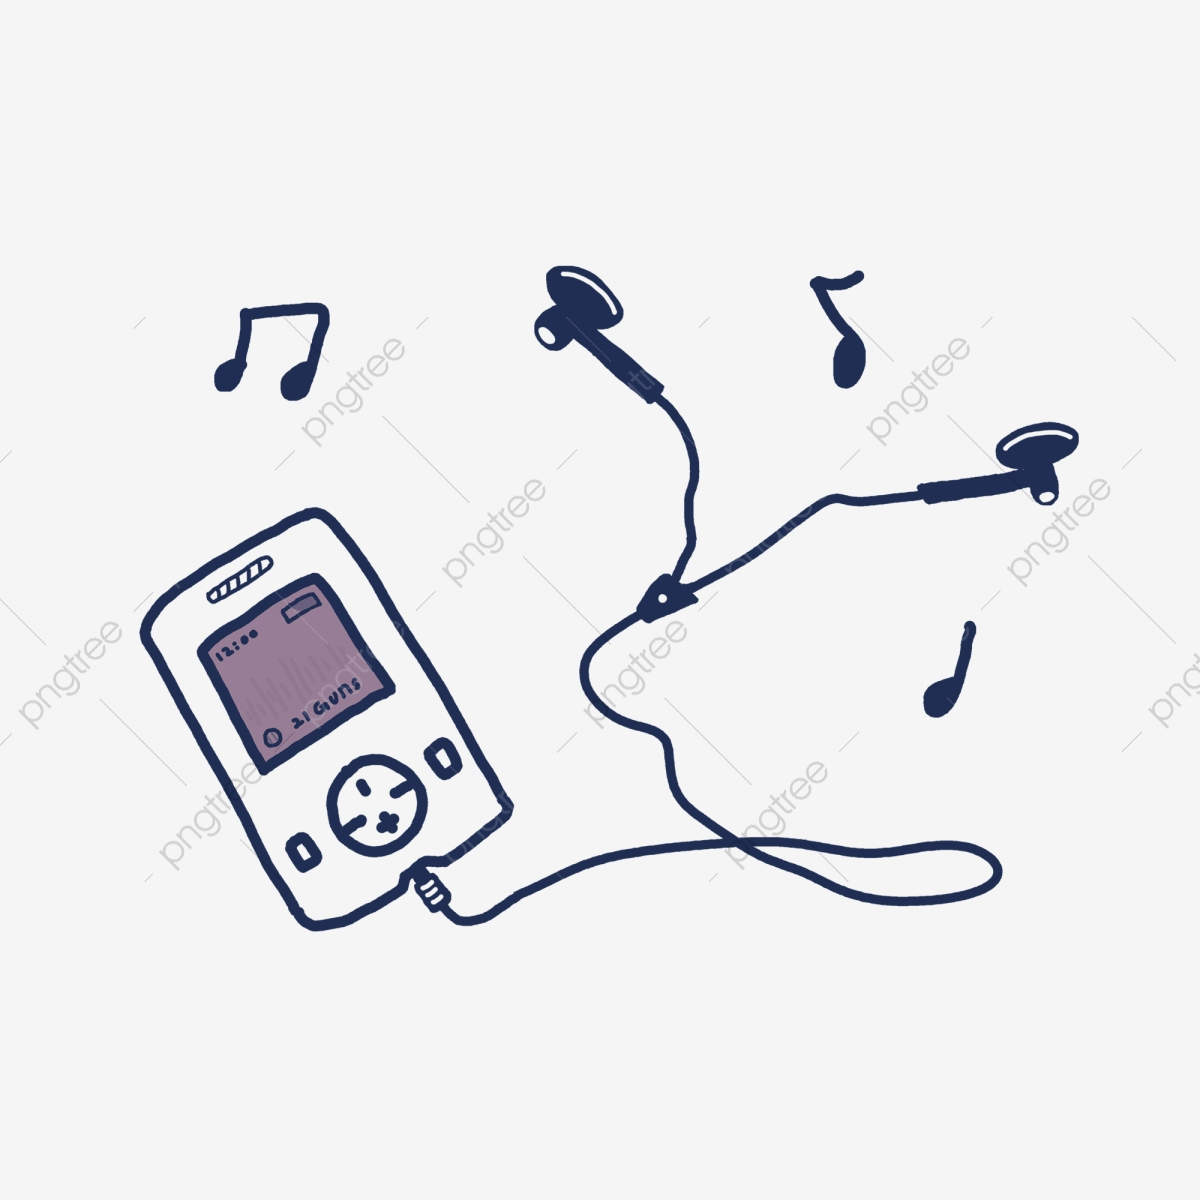 Music clipart music player. Electronic product headset headphone